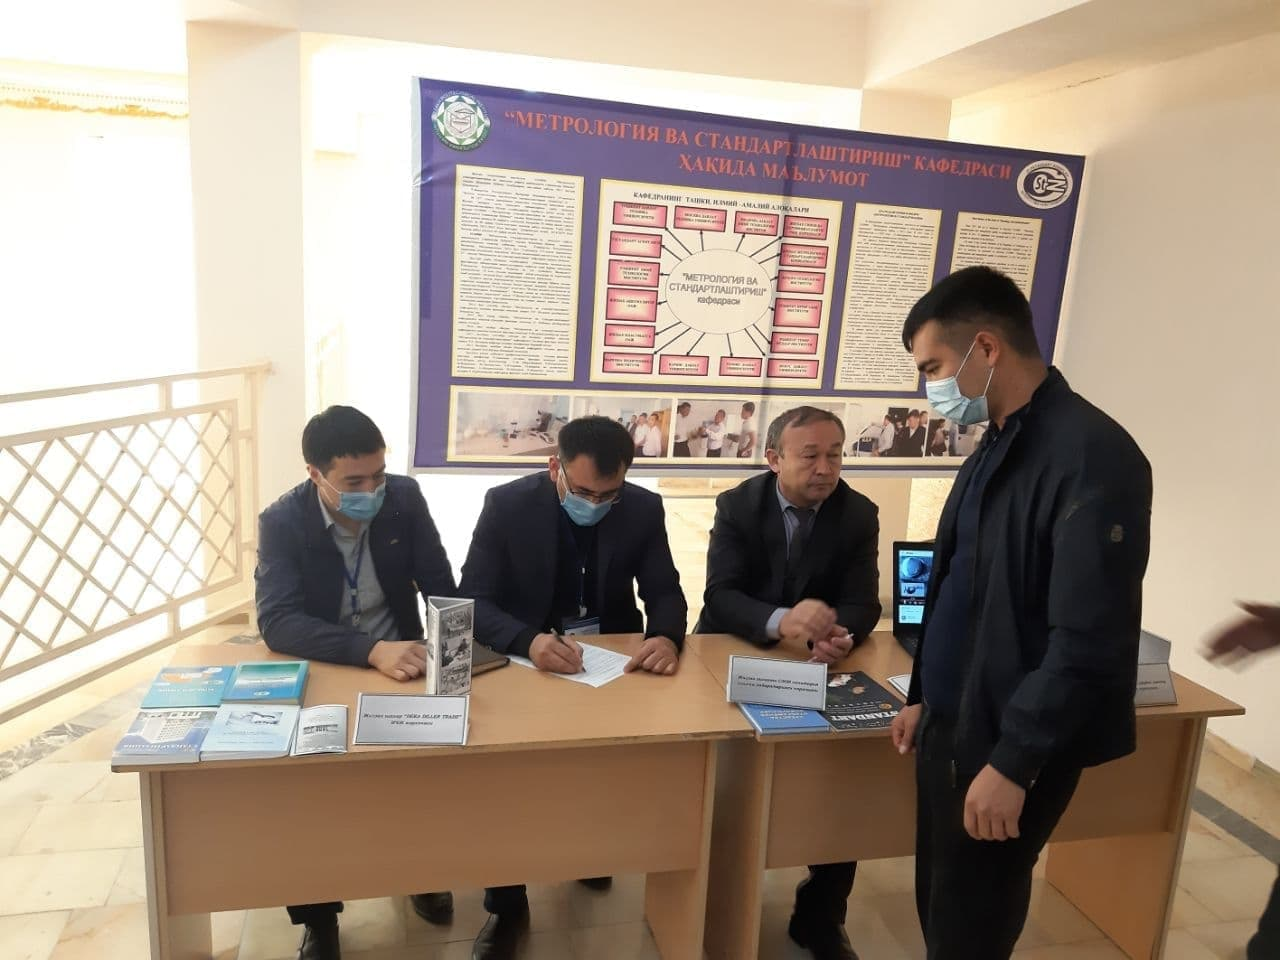 An exhibition of metrological measuring instruments was held